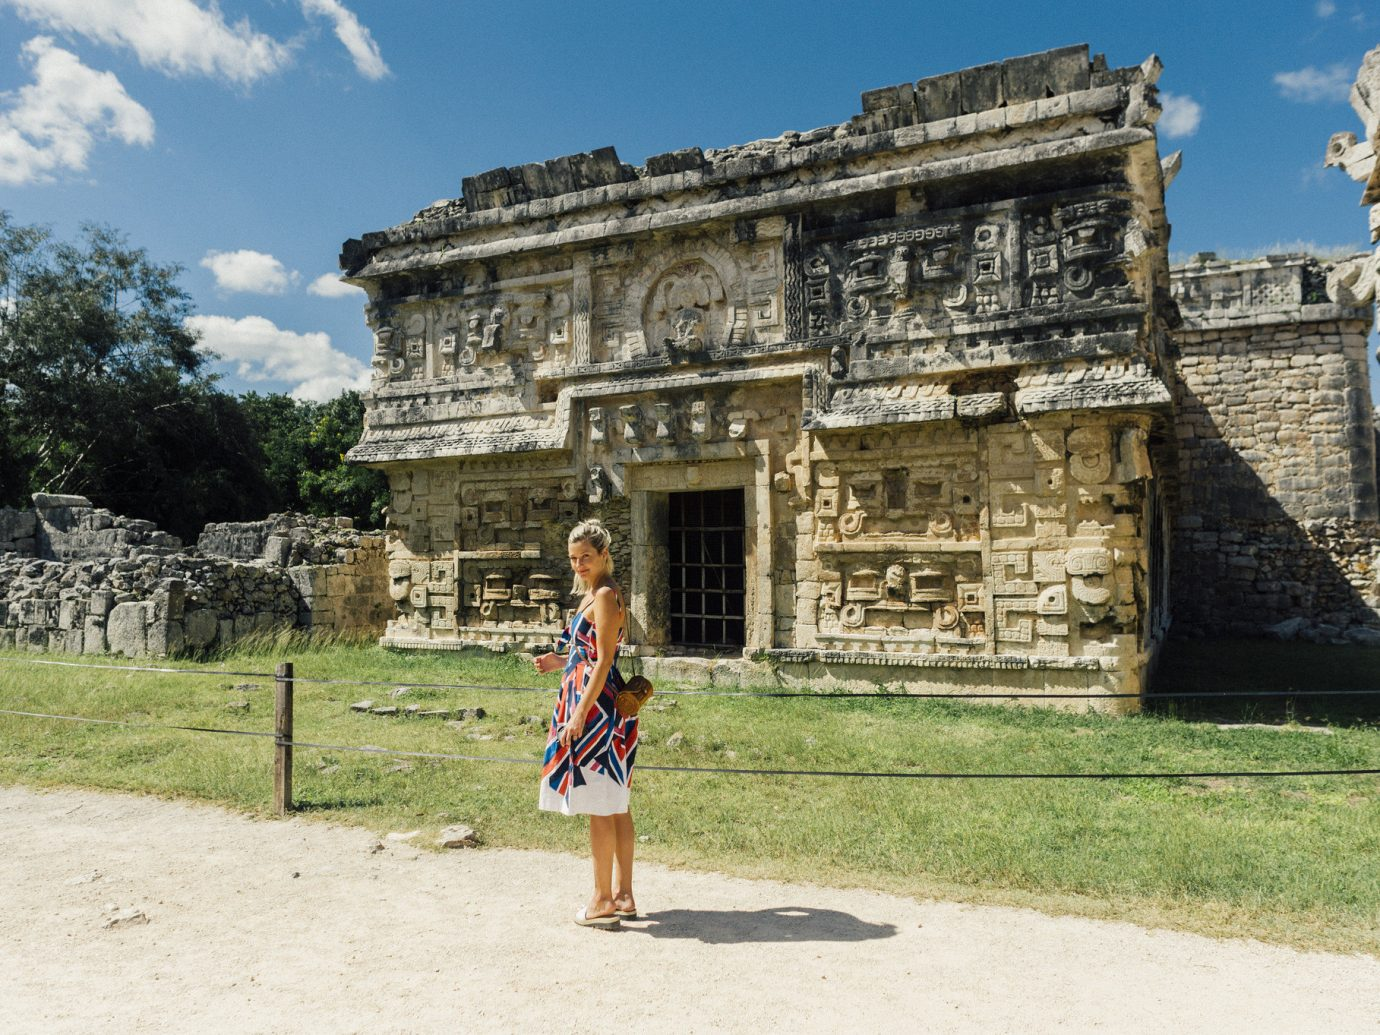 Influencers + Tastemakers Travel Lifestyle Ruins historic site archaeological site ancient history maya civilization sky tourism wall history temple building grass travel maya city vacation monument tree facade